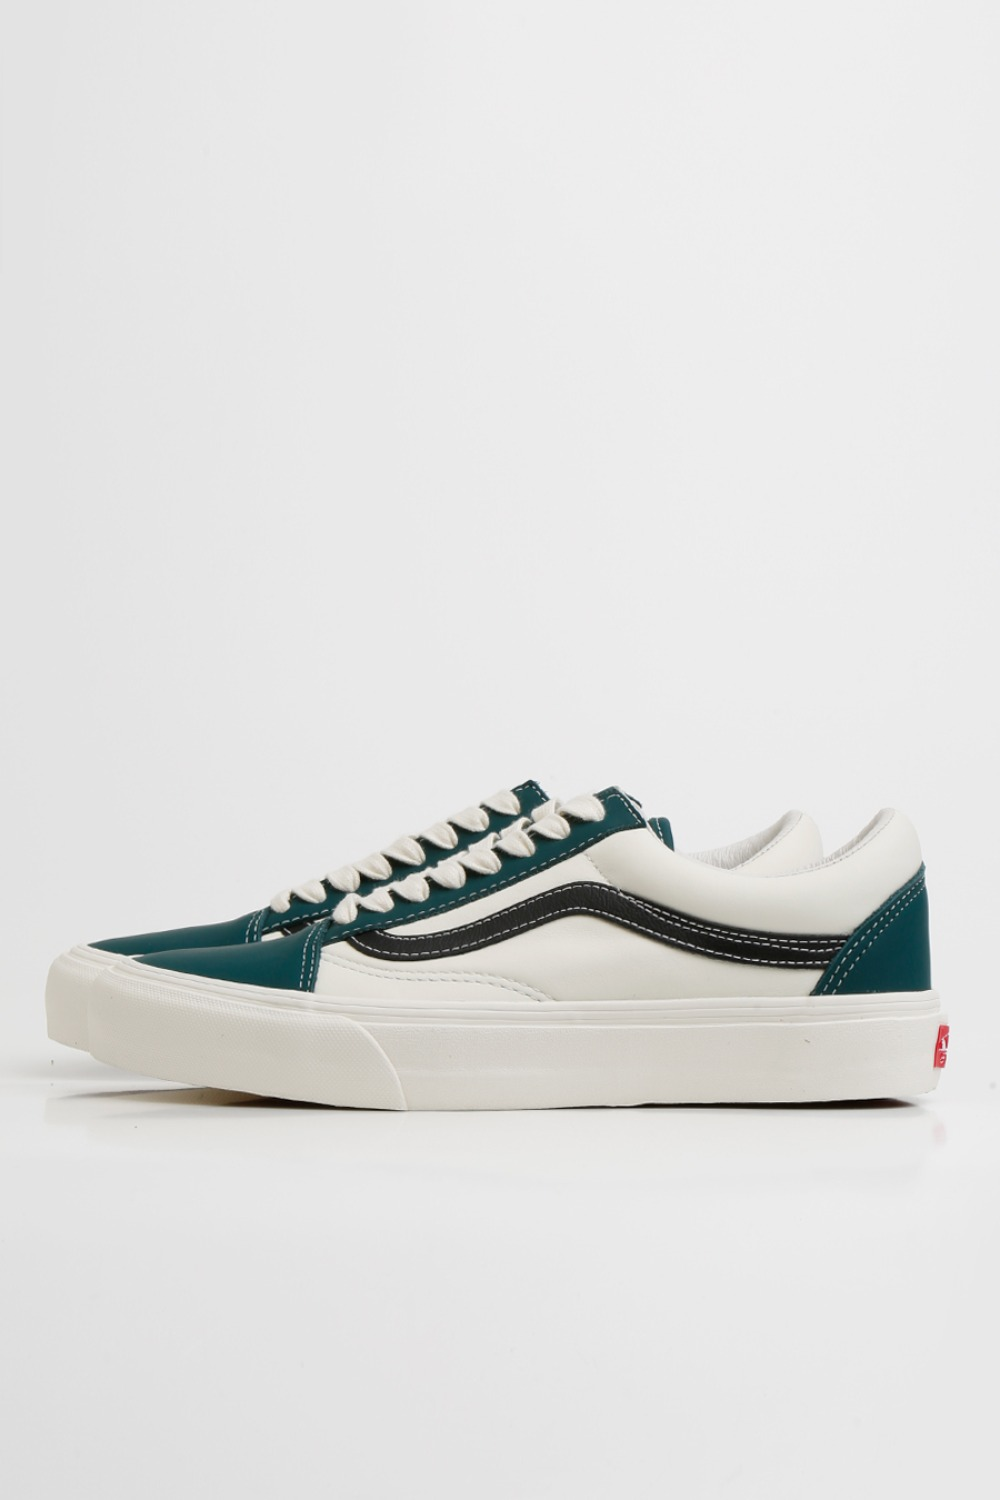 OLD SKOOL VLT LX(LEATHER) EVERGREEN/MARSHMALLOW